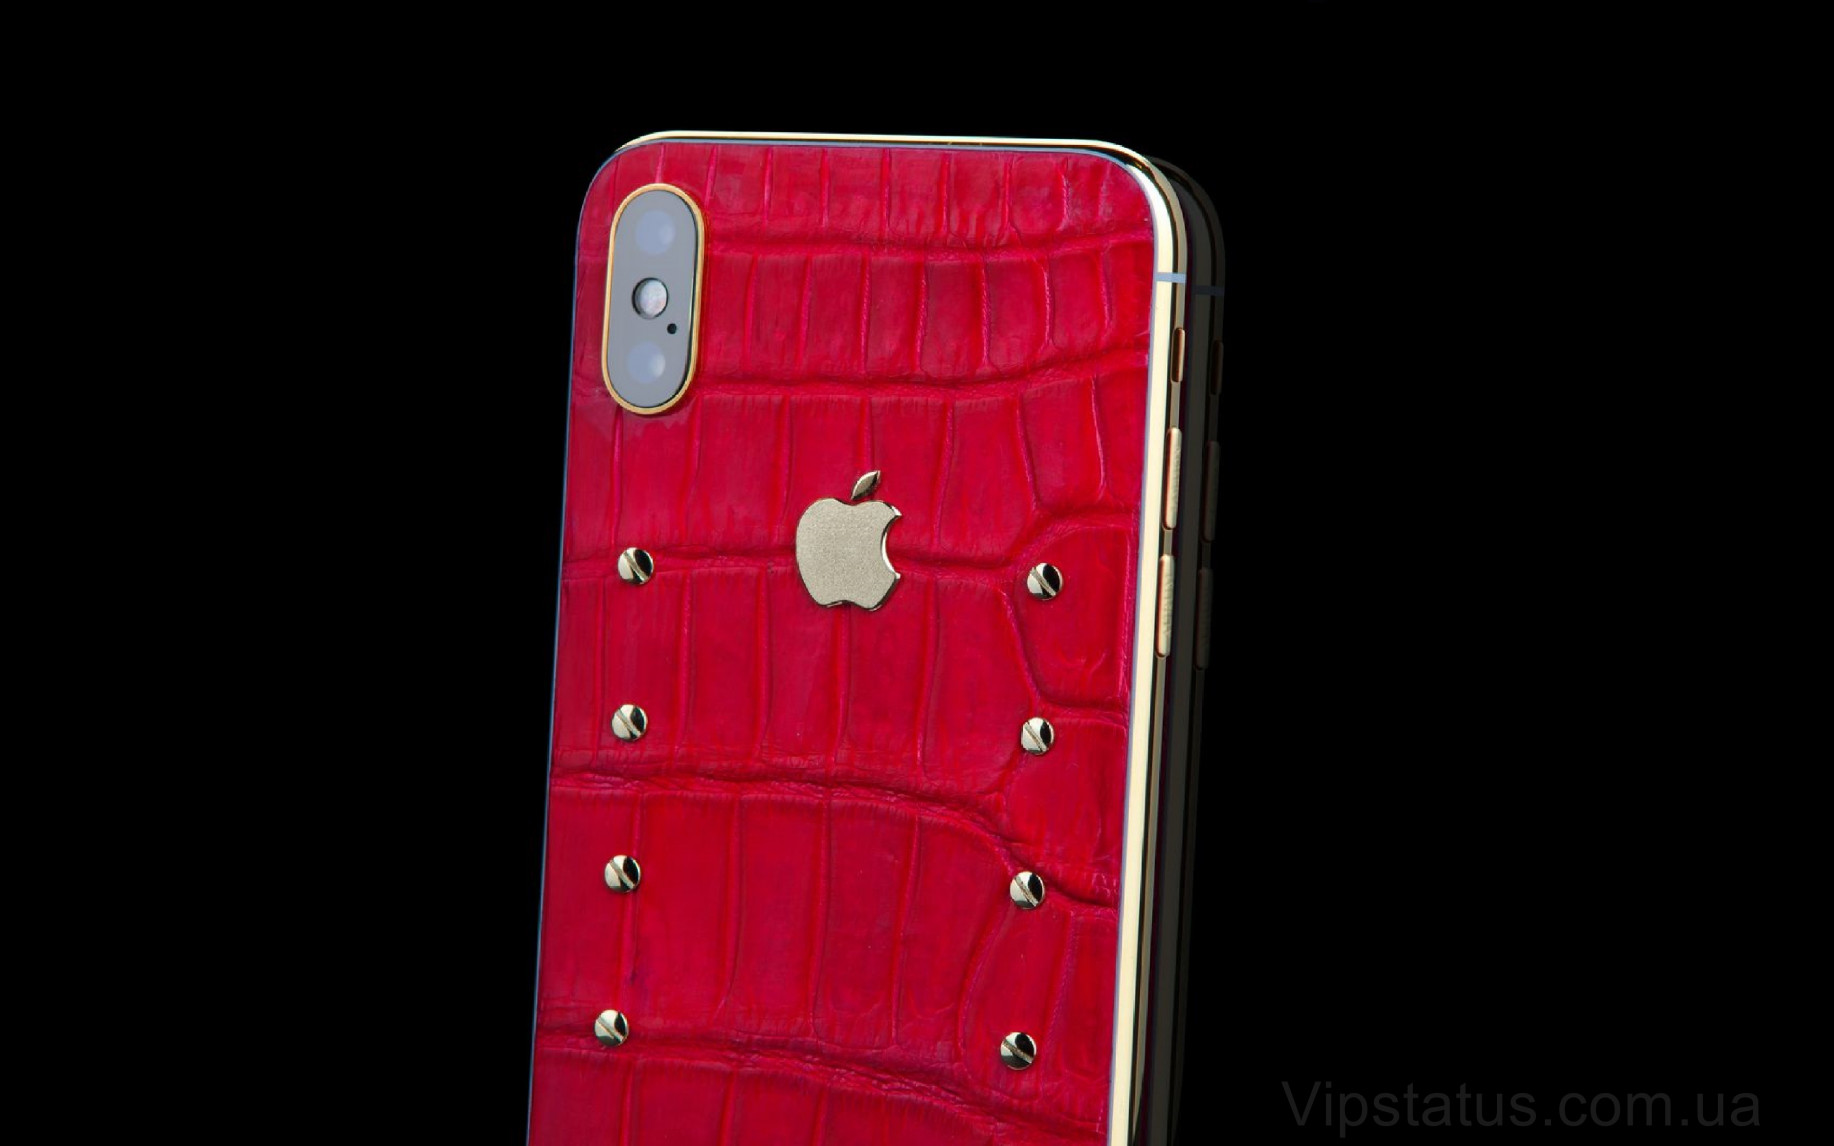 Элитный Red Princess IPHONE XS 512 GB Red Princess IPHONE XS 512 GB изображение 2